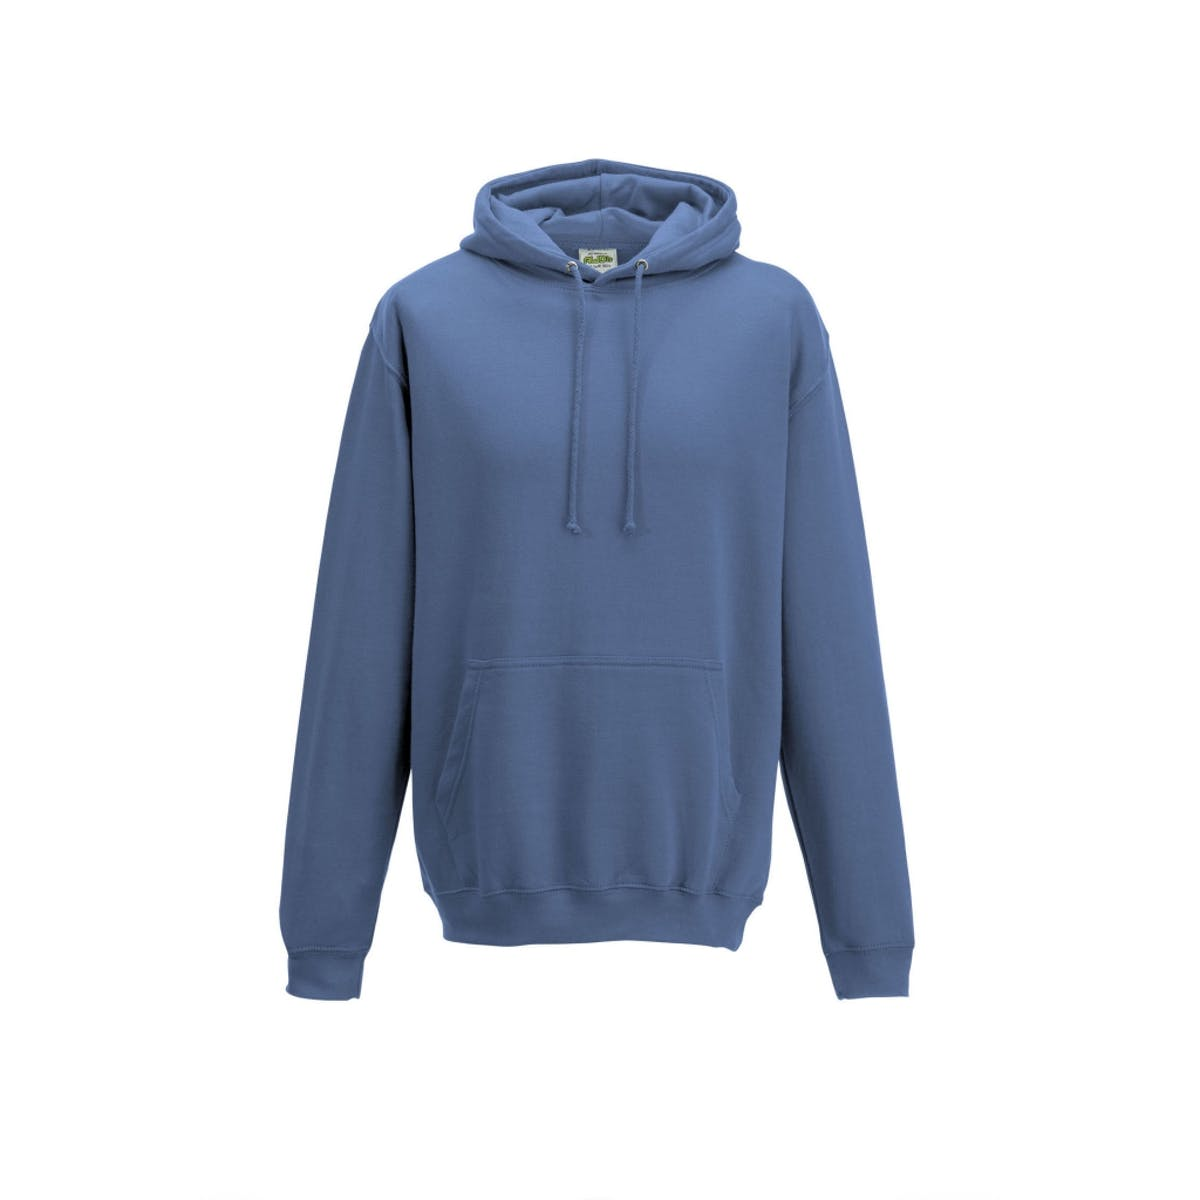 cornflower blue college hoodies